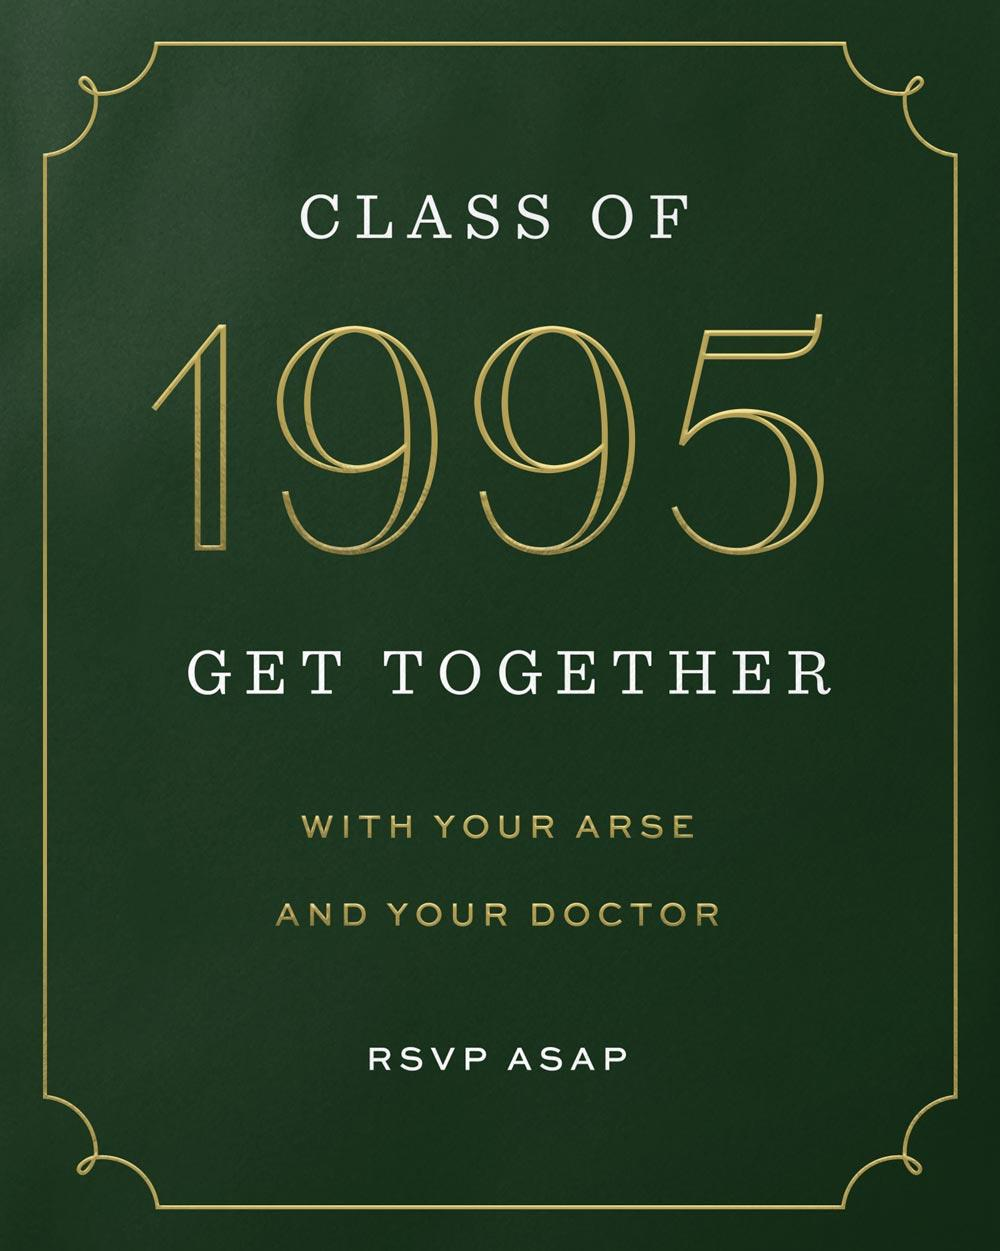 Class of 1995: Get together with your arse and your doctor. RSVP ASAP.